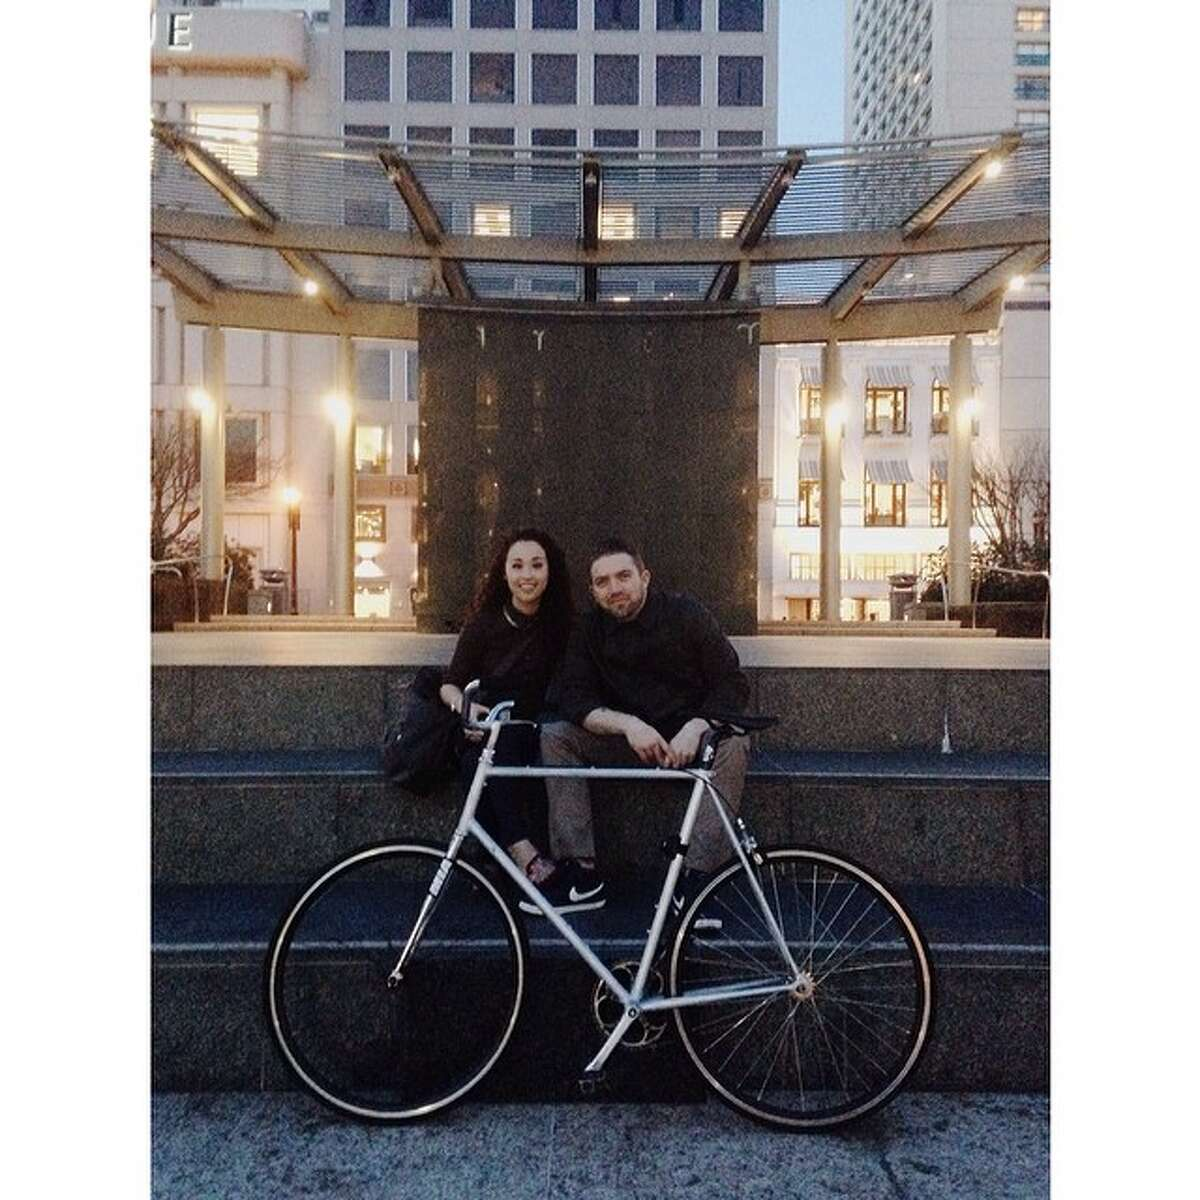 Ben Schwartz, a 31-year-old Tenderloin resident who was stabbed and seriously wounded when he tried to stop a man from harassing his girlfriend on Saturday, Nov. 15, 2014, had gone out of his way to help a Chronicle freelance photographer get back his stolen bicycle just months earlier.